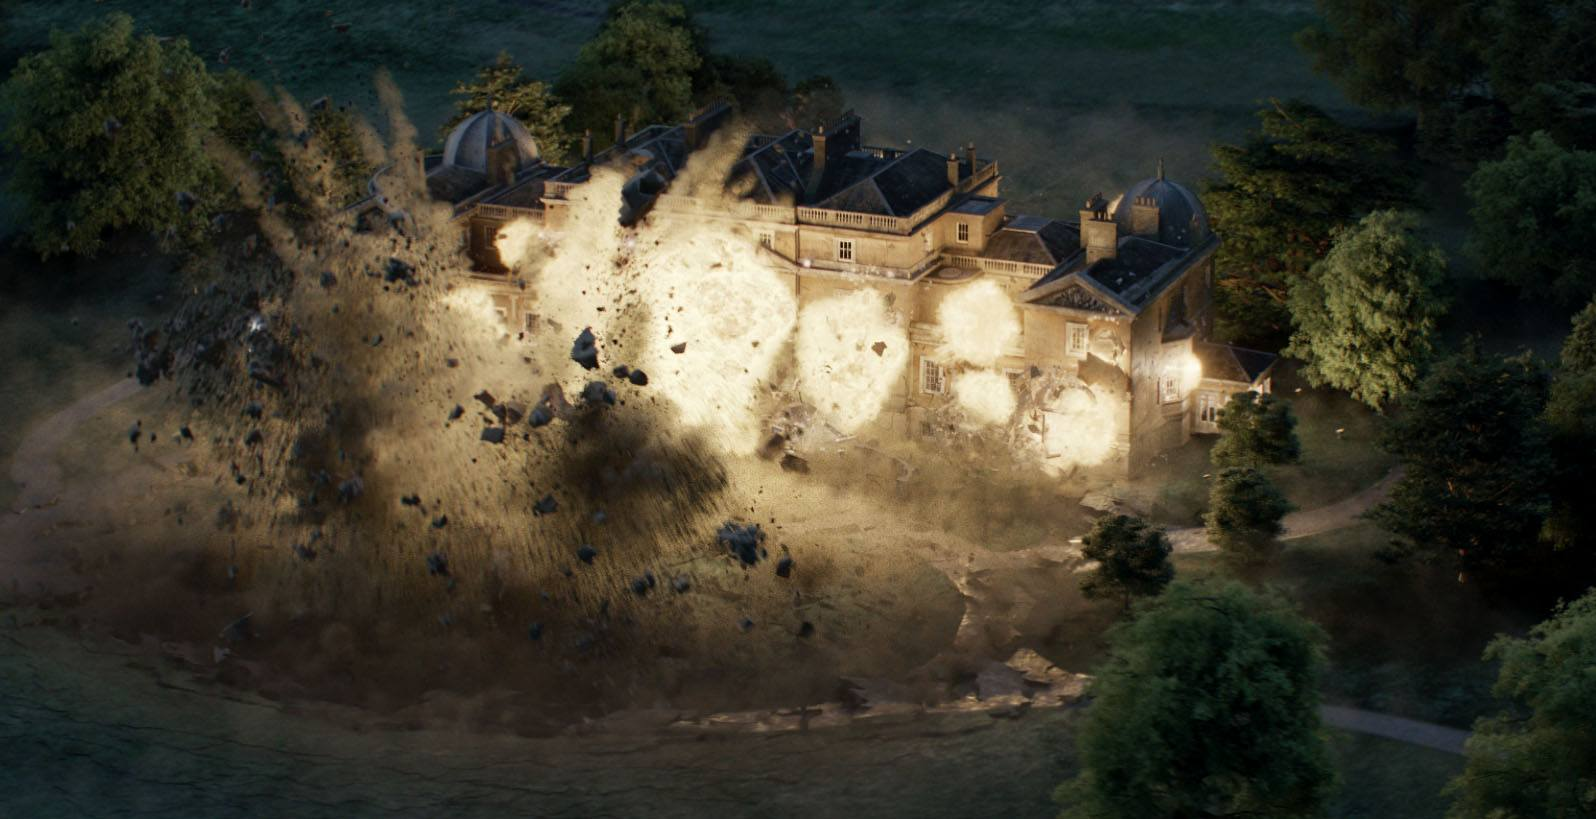 The kingsman hq mansion exploding in kingsman the golden circle sony pictures imageworks